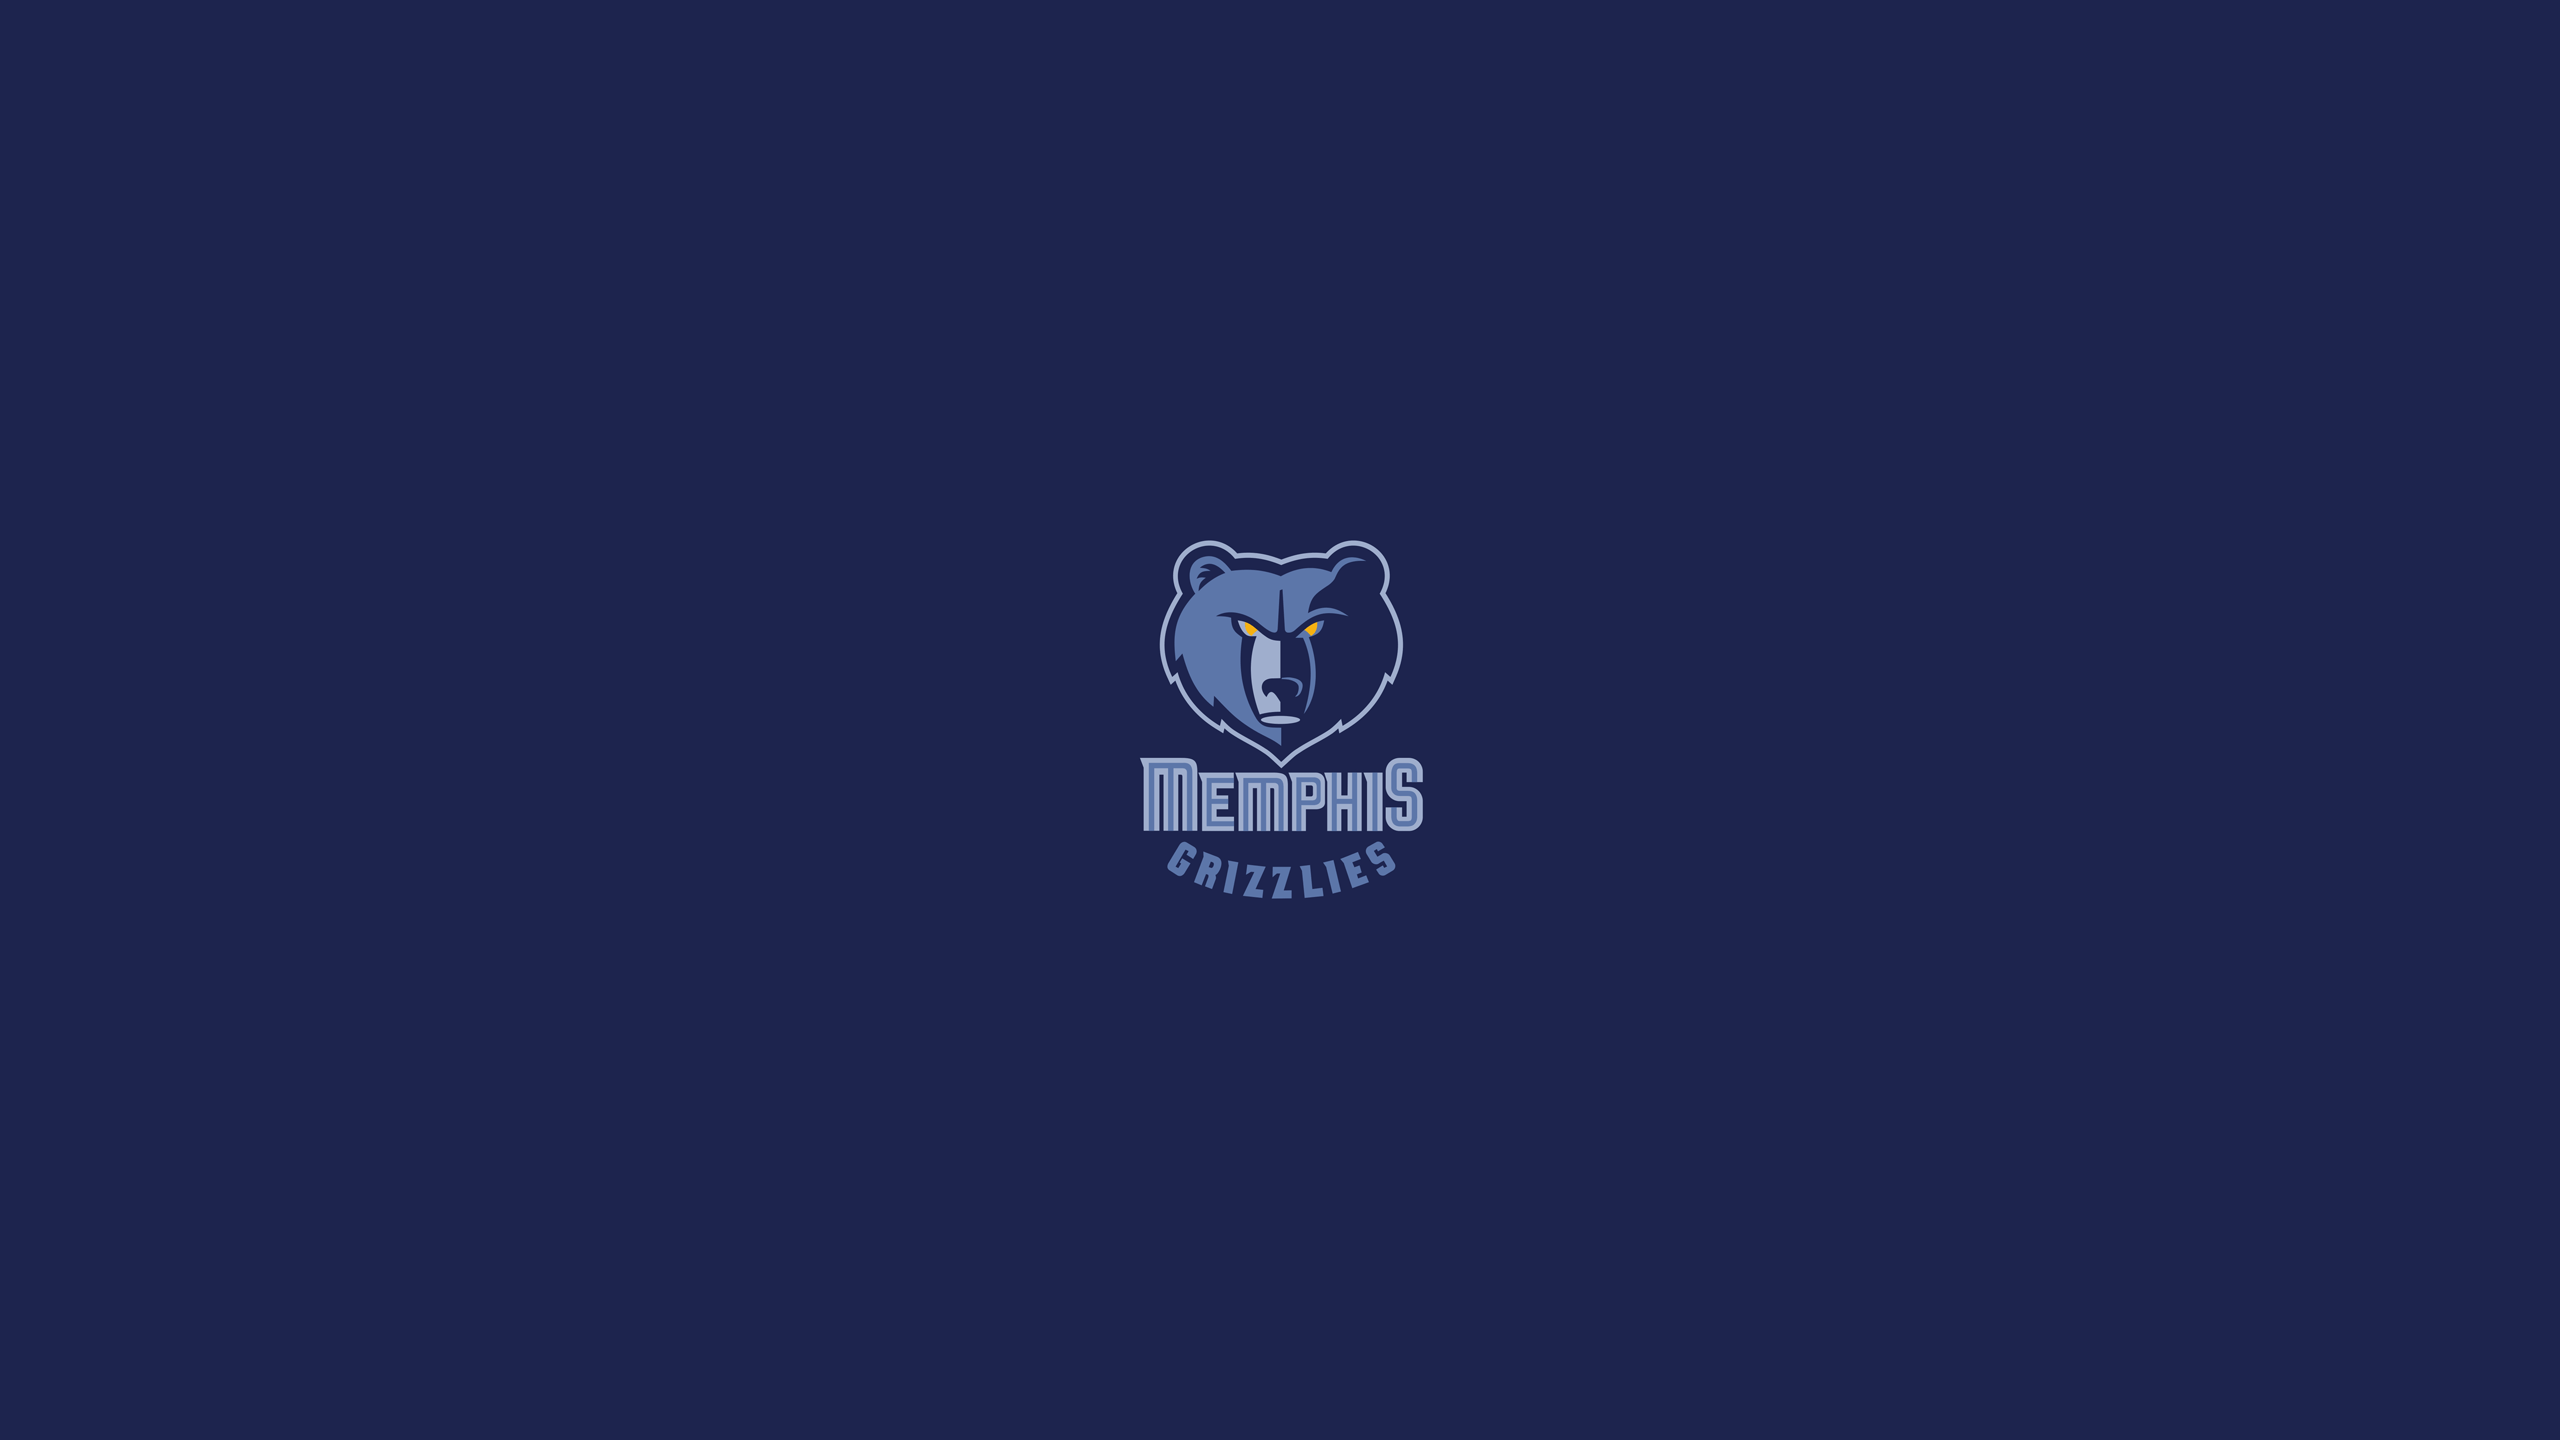 Memphis Grizzlies iPhone Wallpaper - WallpaperSafari